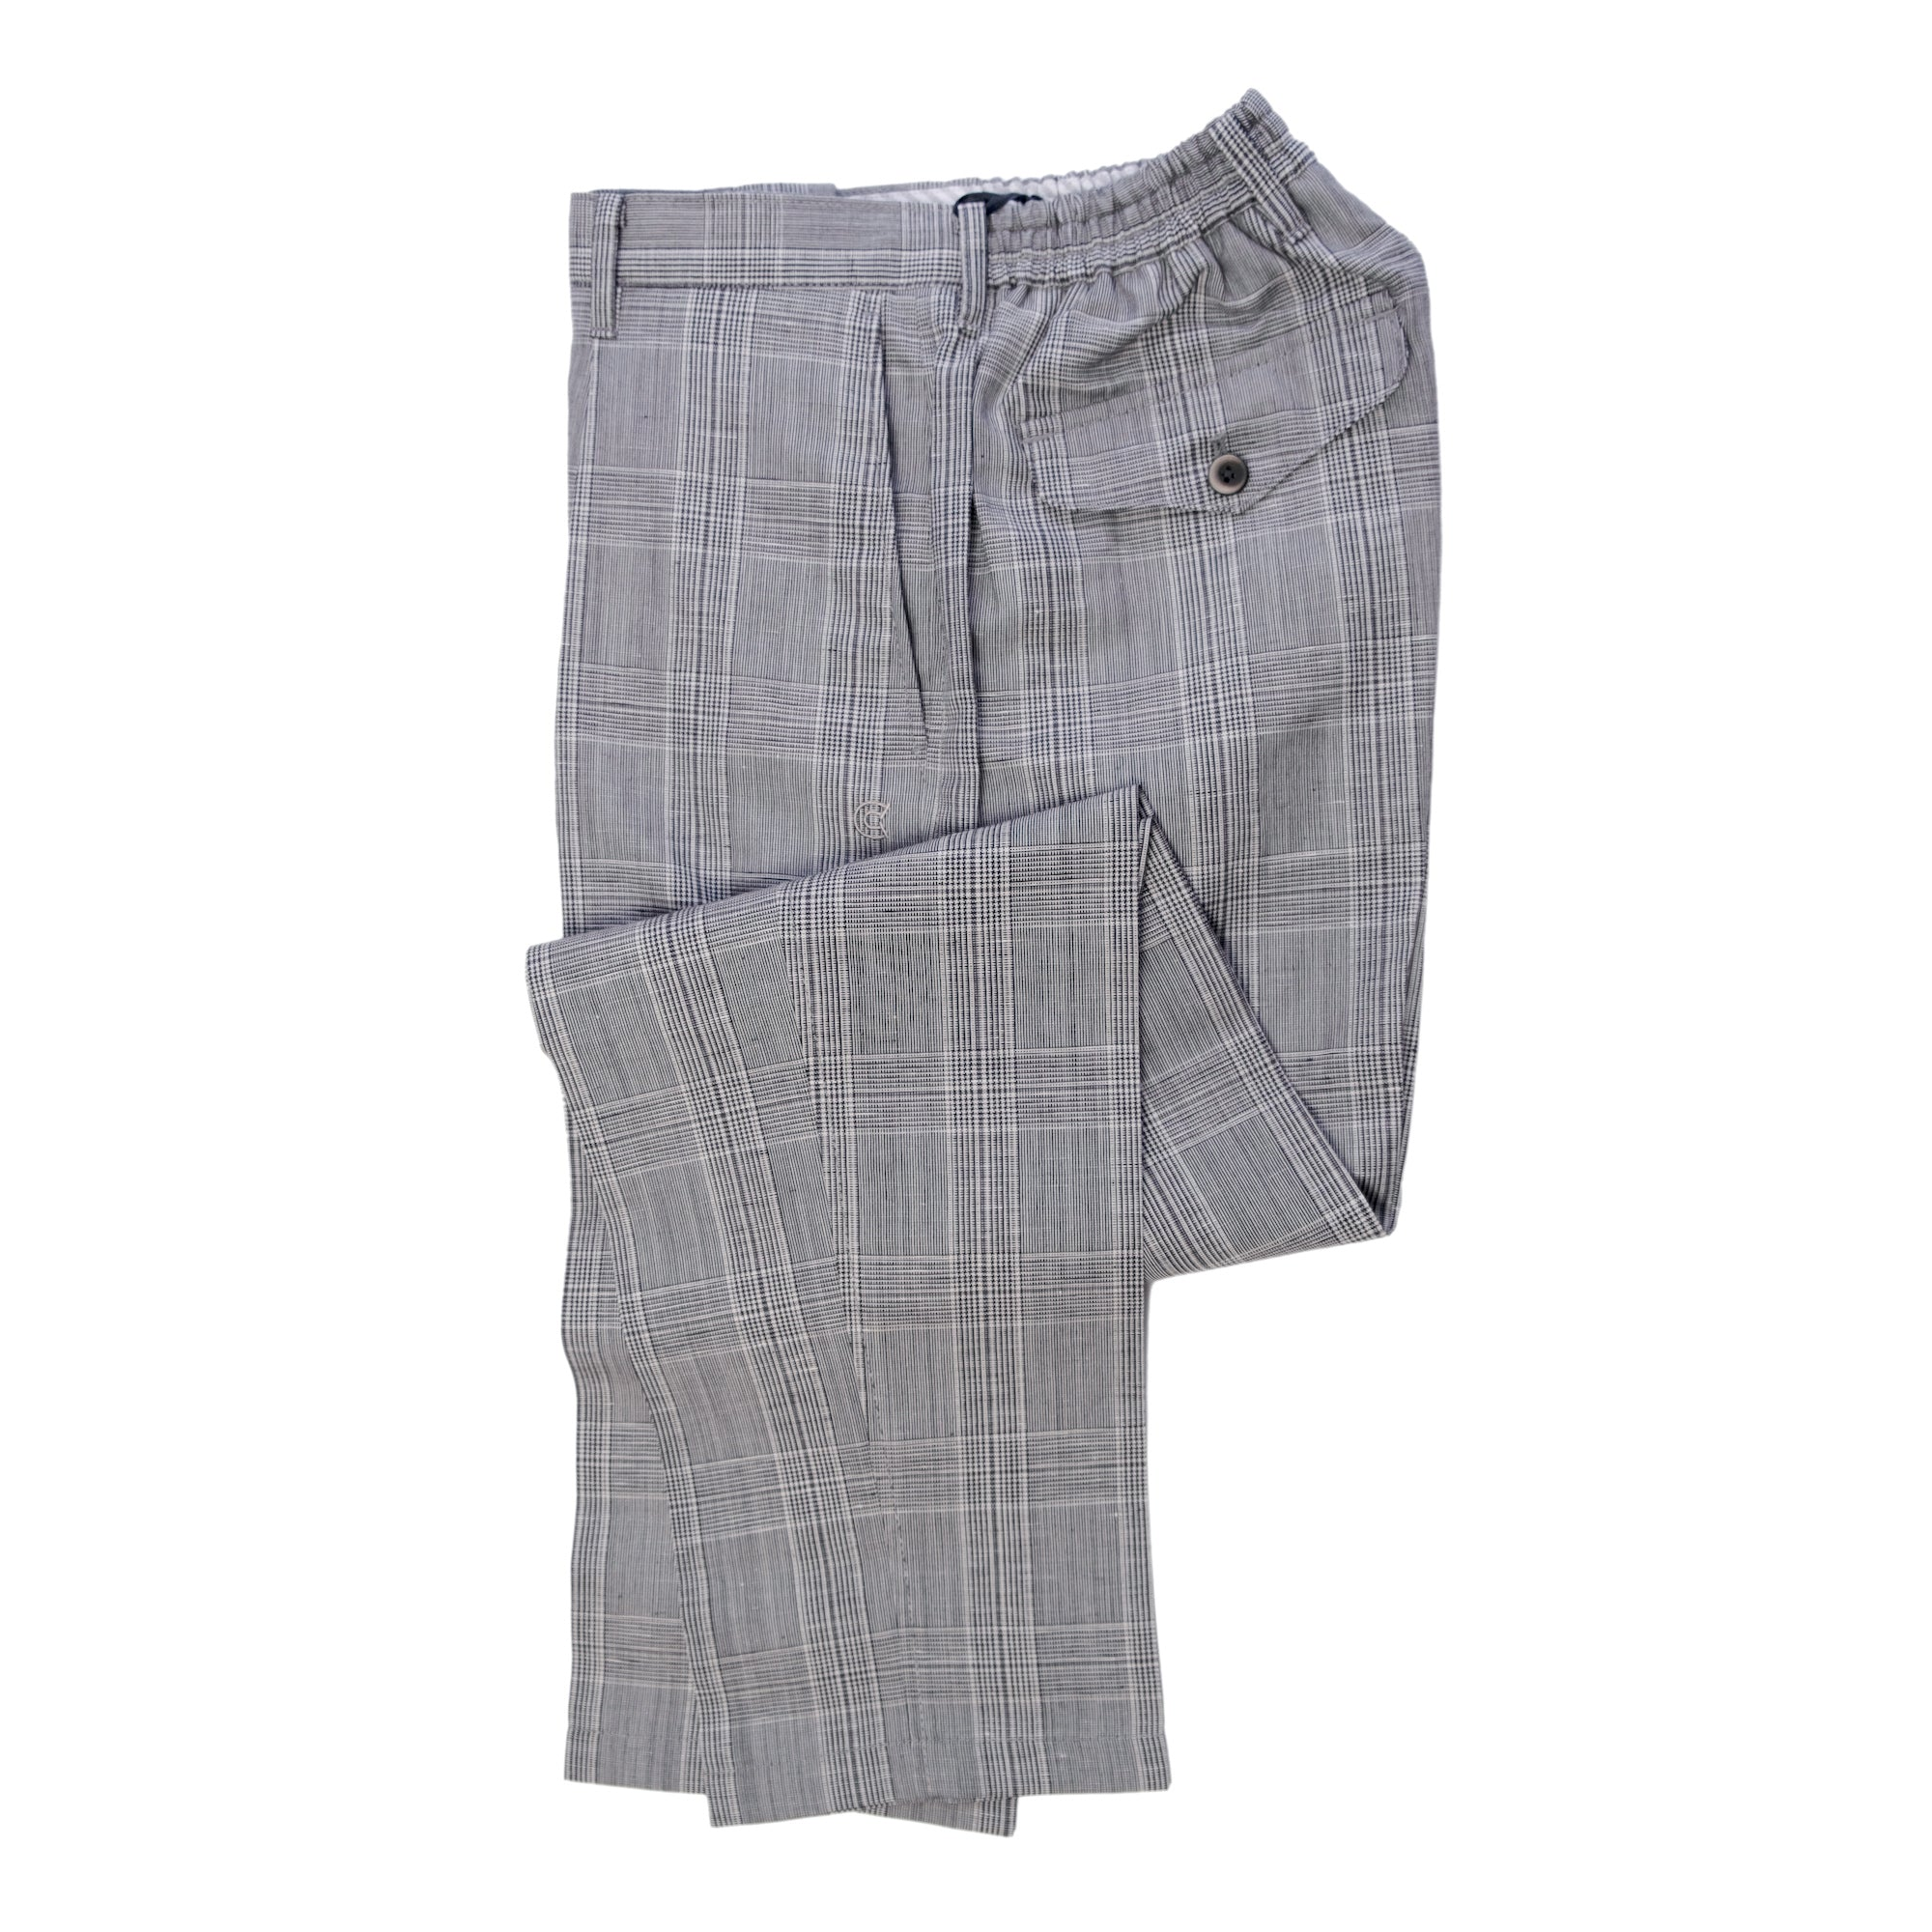 COLONY CLOTHING / ONE-PLEAT GLEN CHECK VBC TROUSERS  / CC21-PT01-4